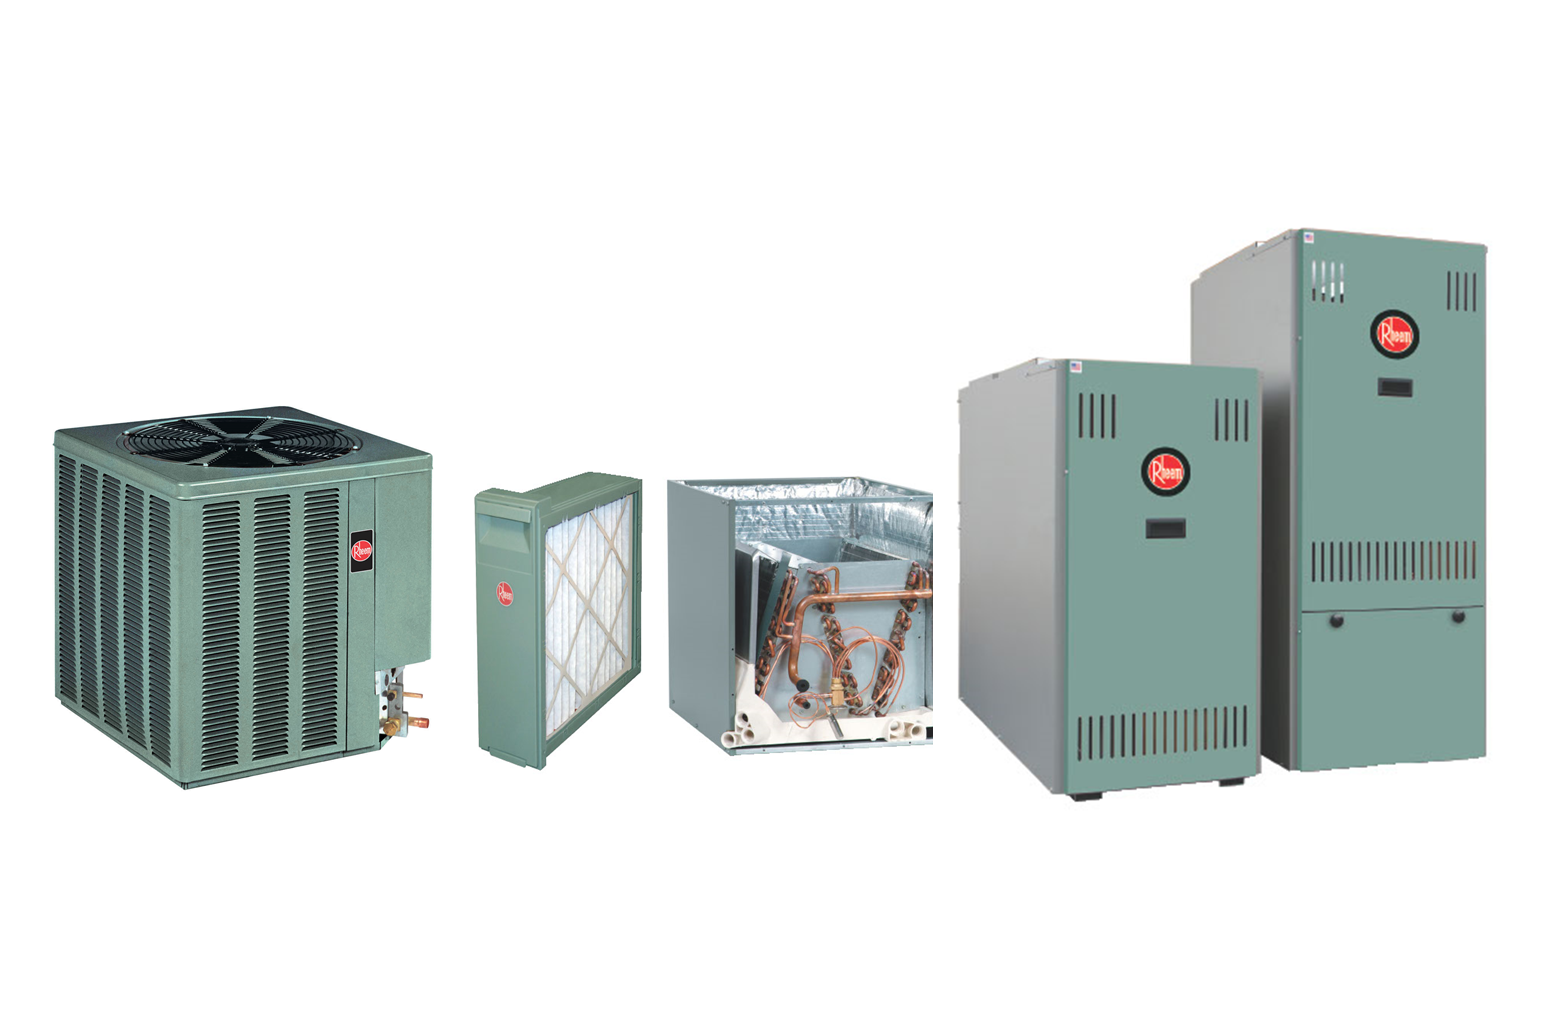 Diagram Rheem Air Conditioning Products In Arizona